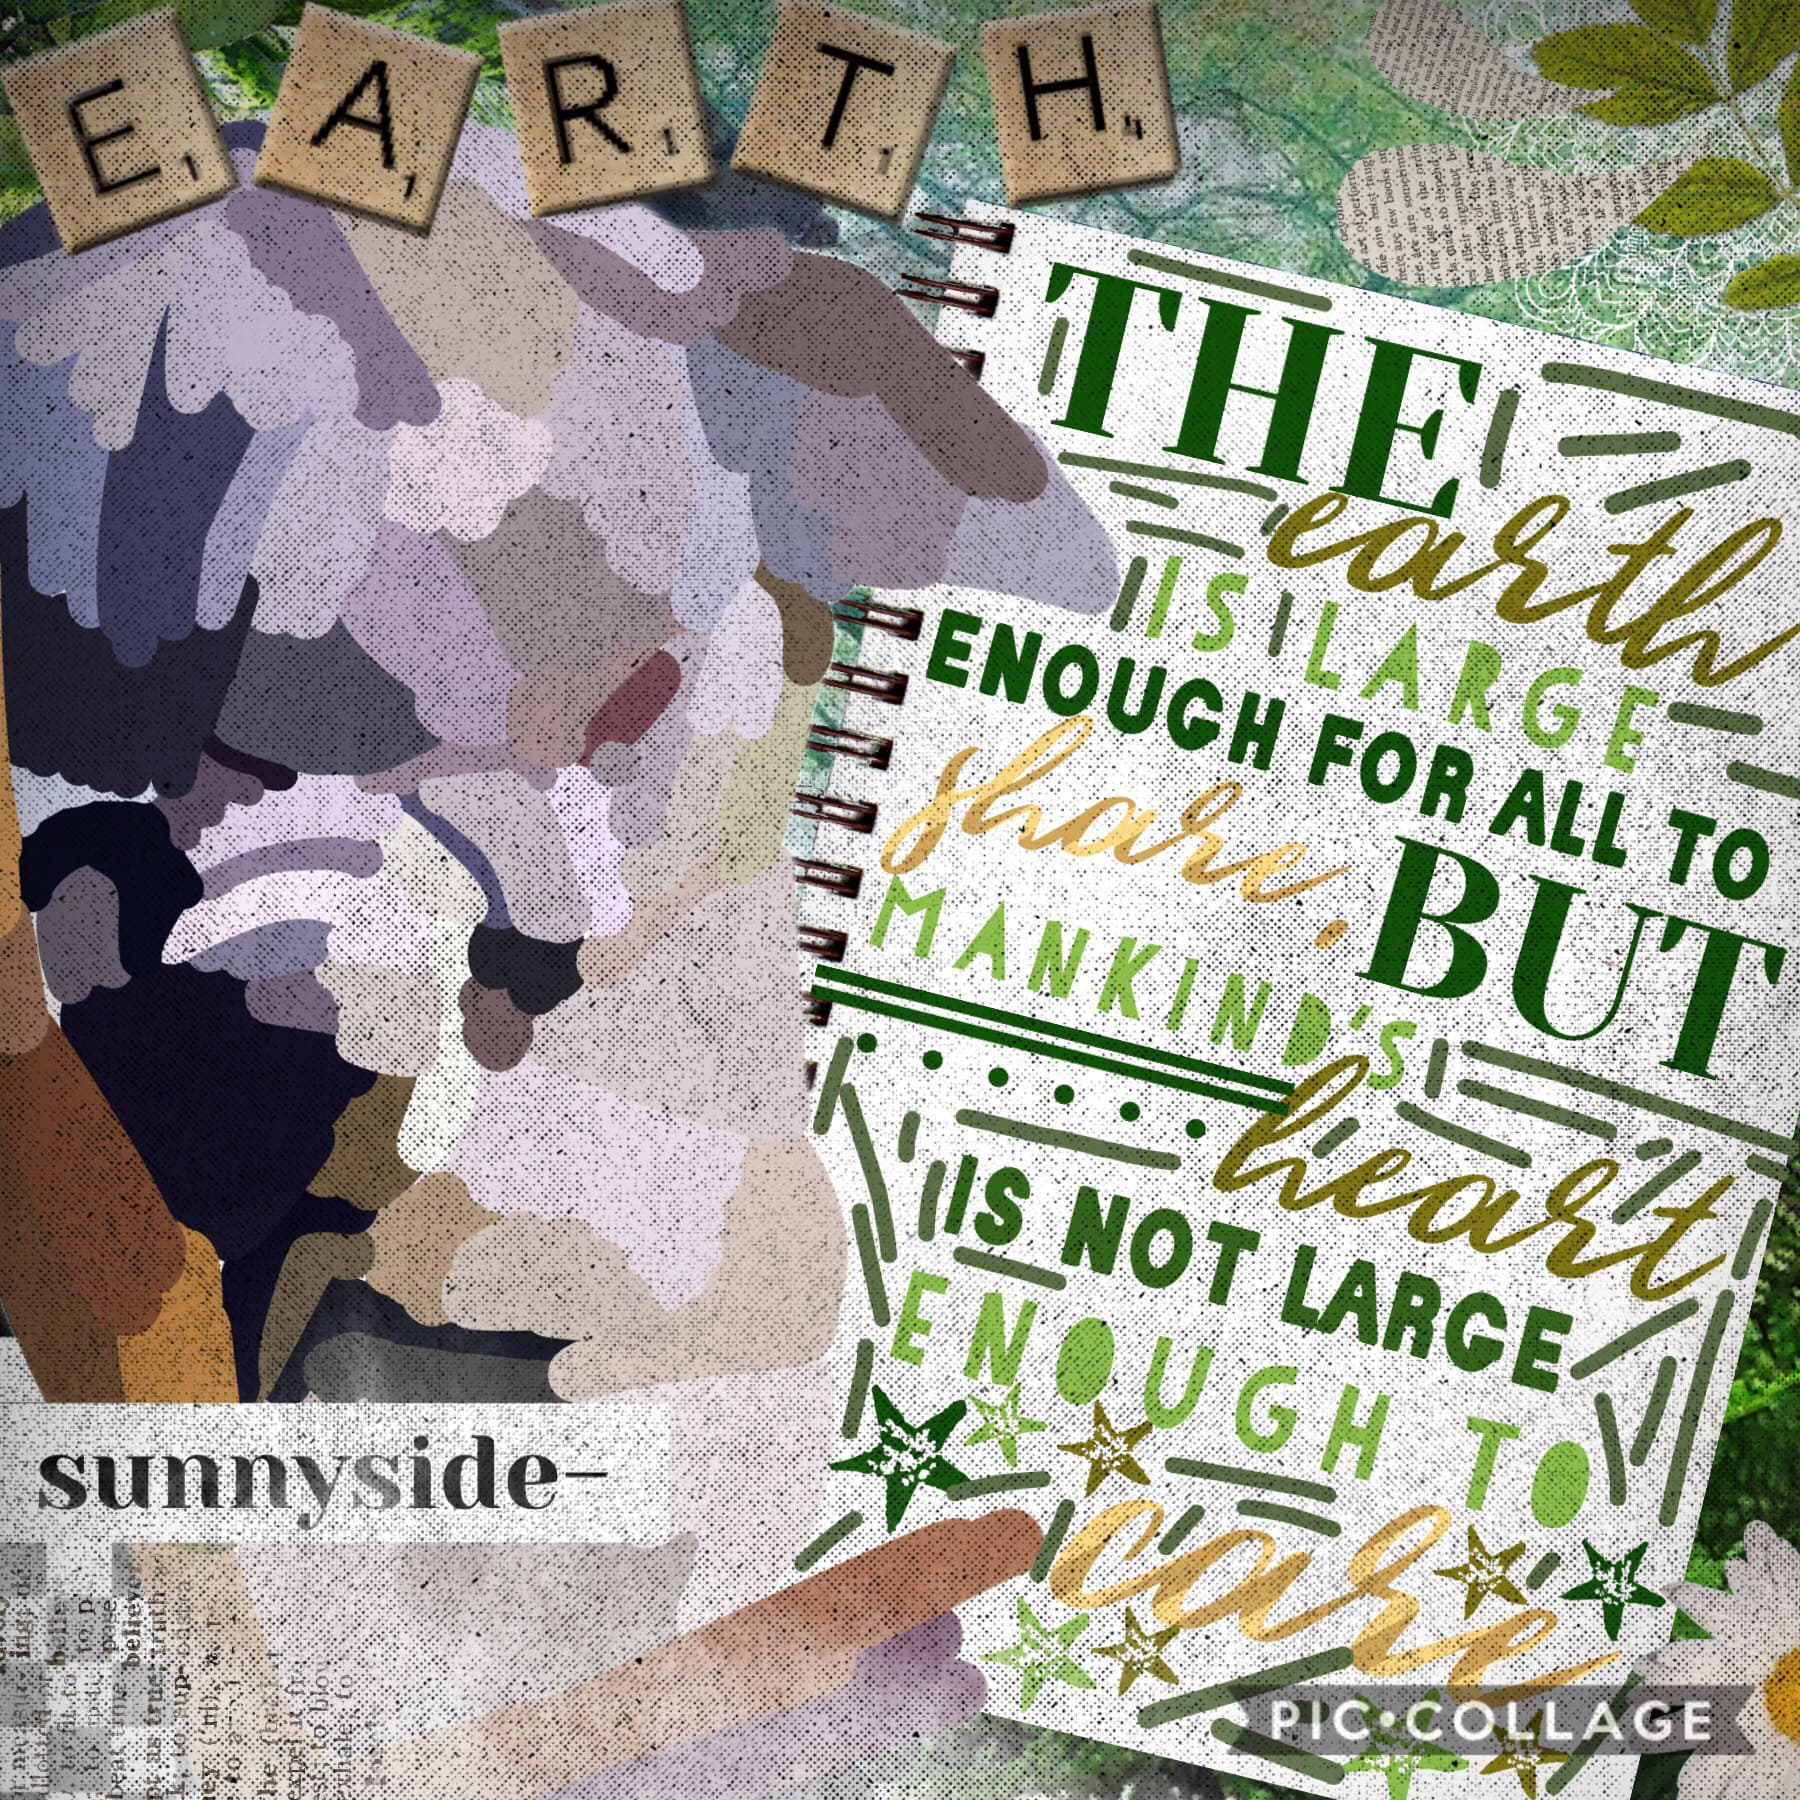 I've never been so inspired to make a collage. (tap)  You probably can't tell, but this is a koala. I'm just bad at tracing images 😔 this quote is so powerful omg